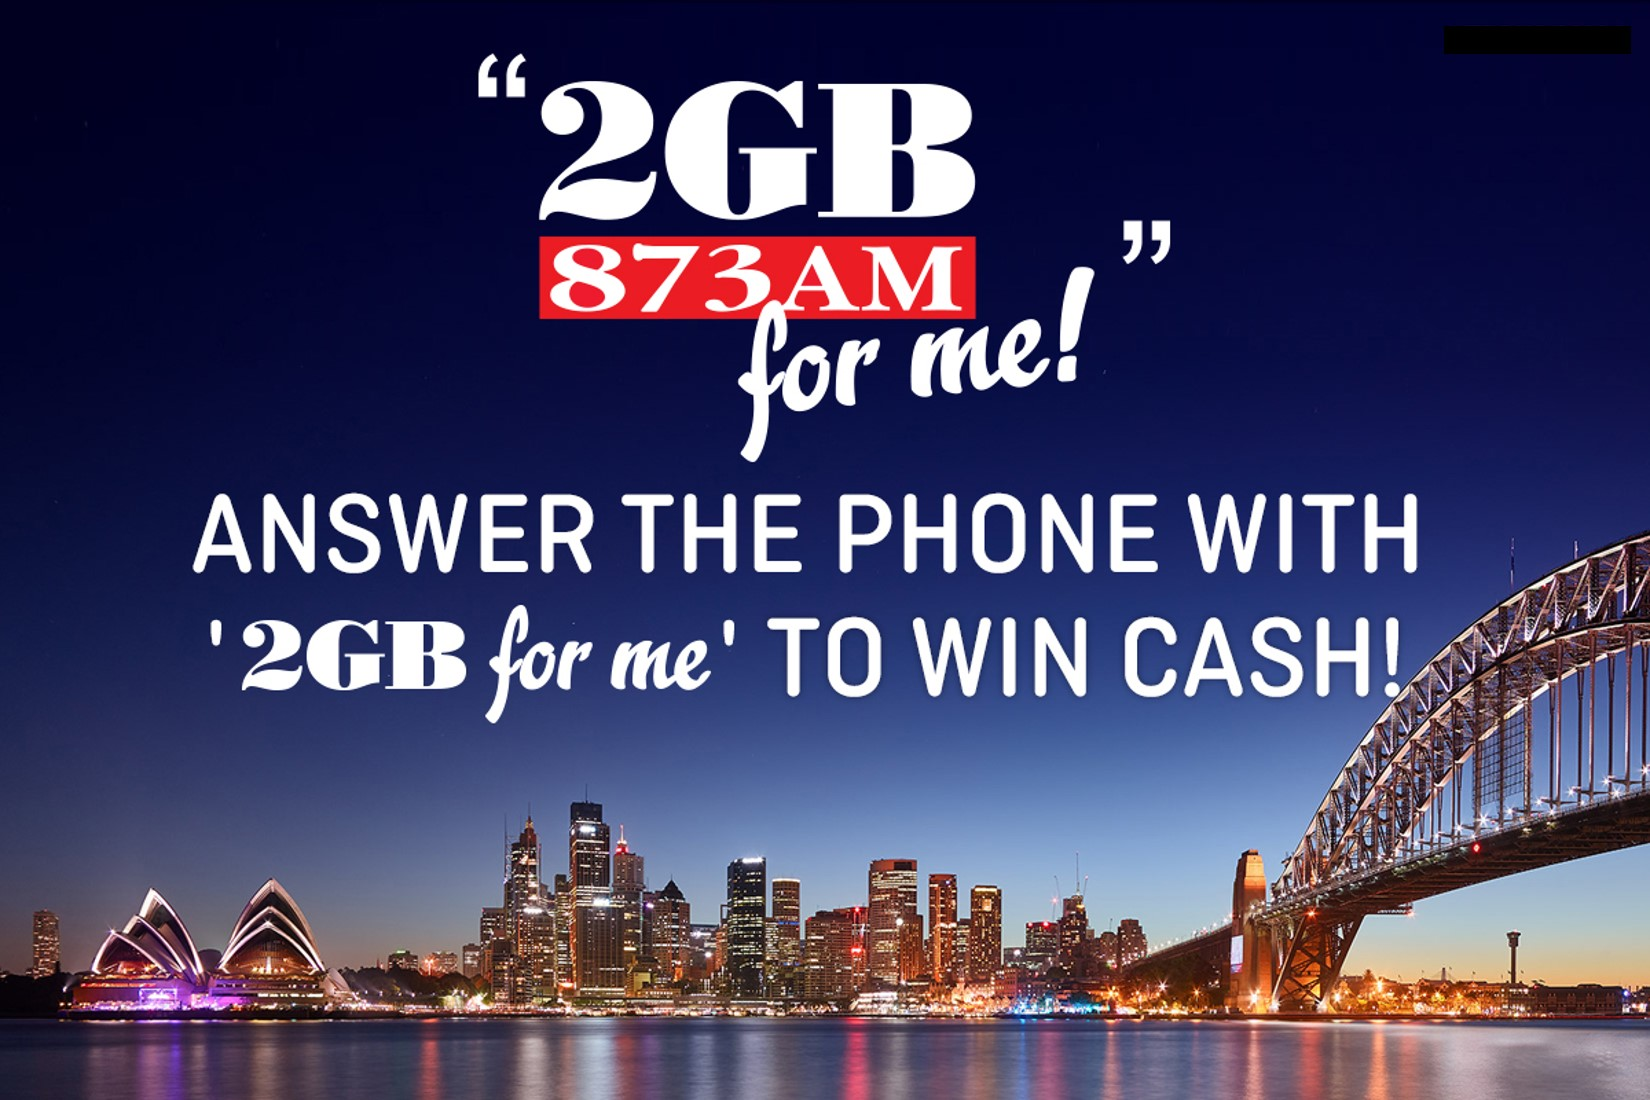 Win Cash with 2GB for Me!